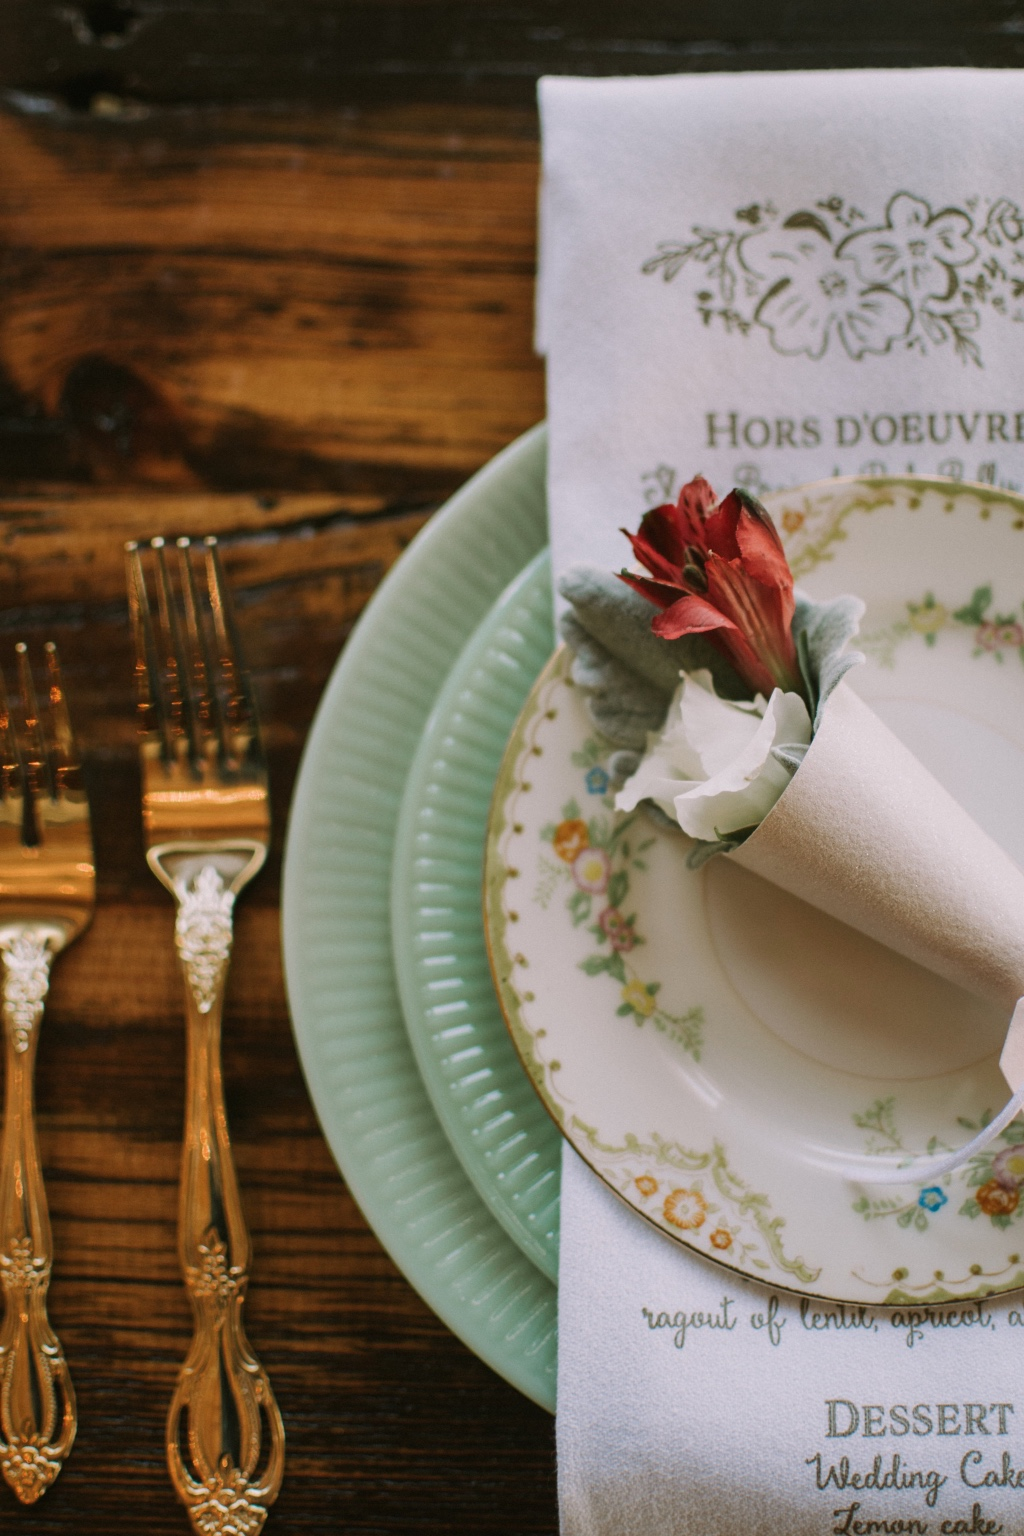 Your wedding menu printed on cloth napkins, by Lucky Invitations.